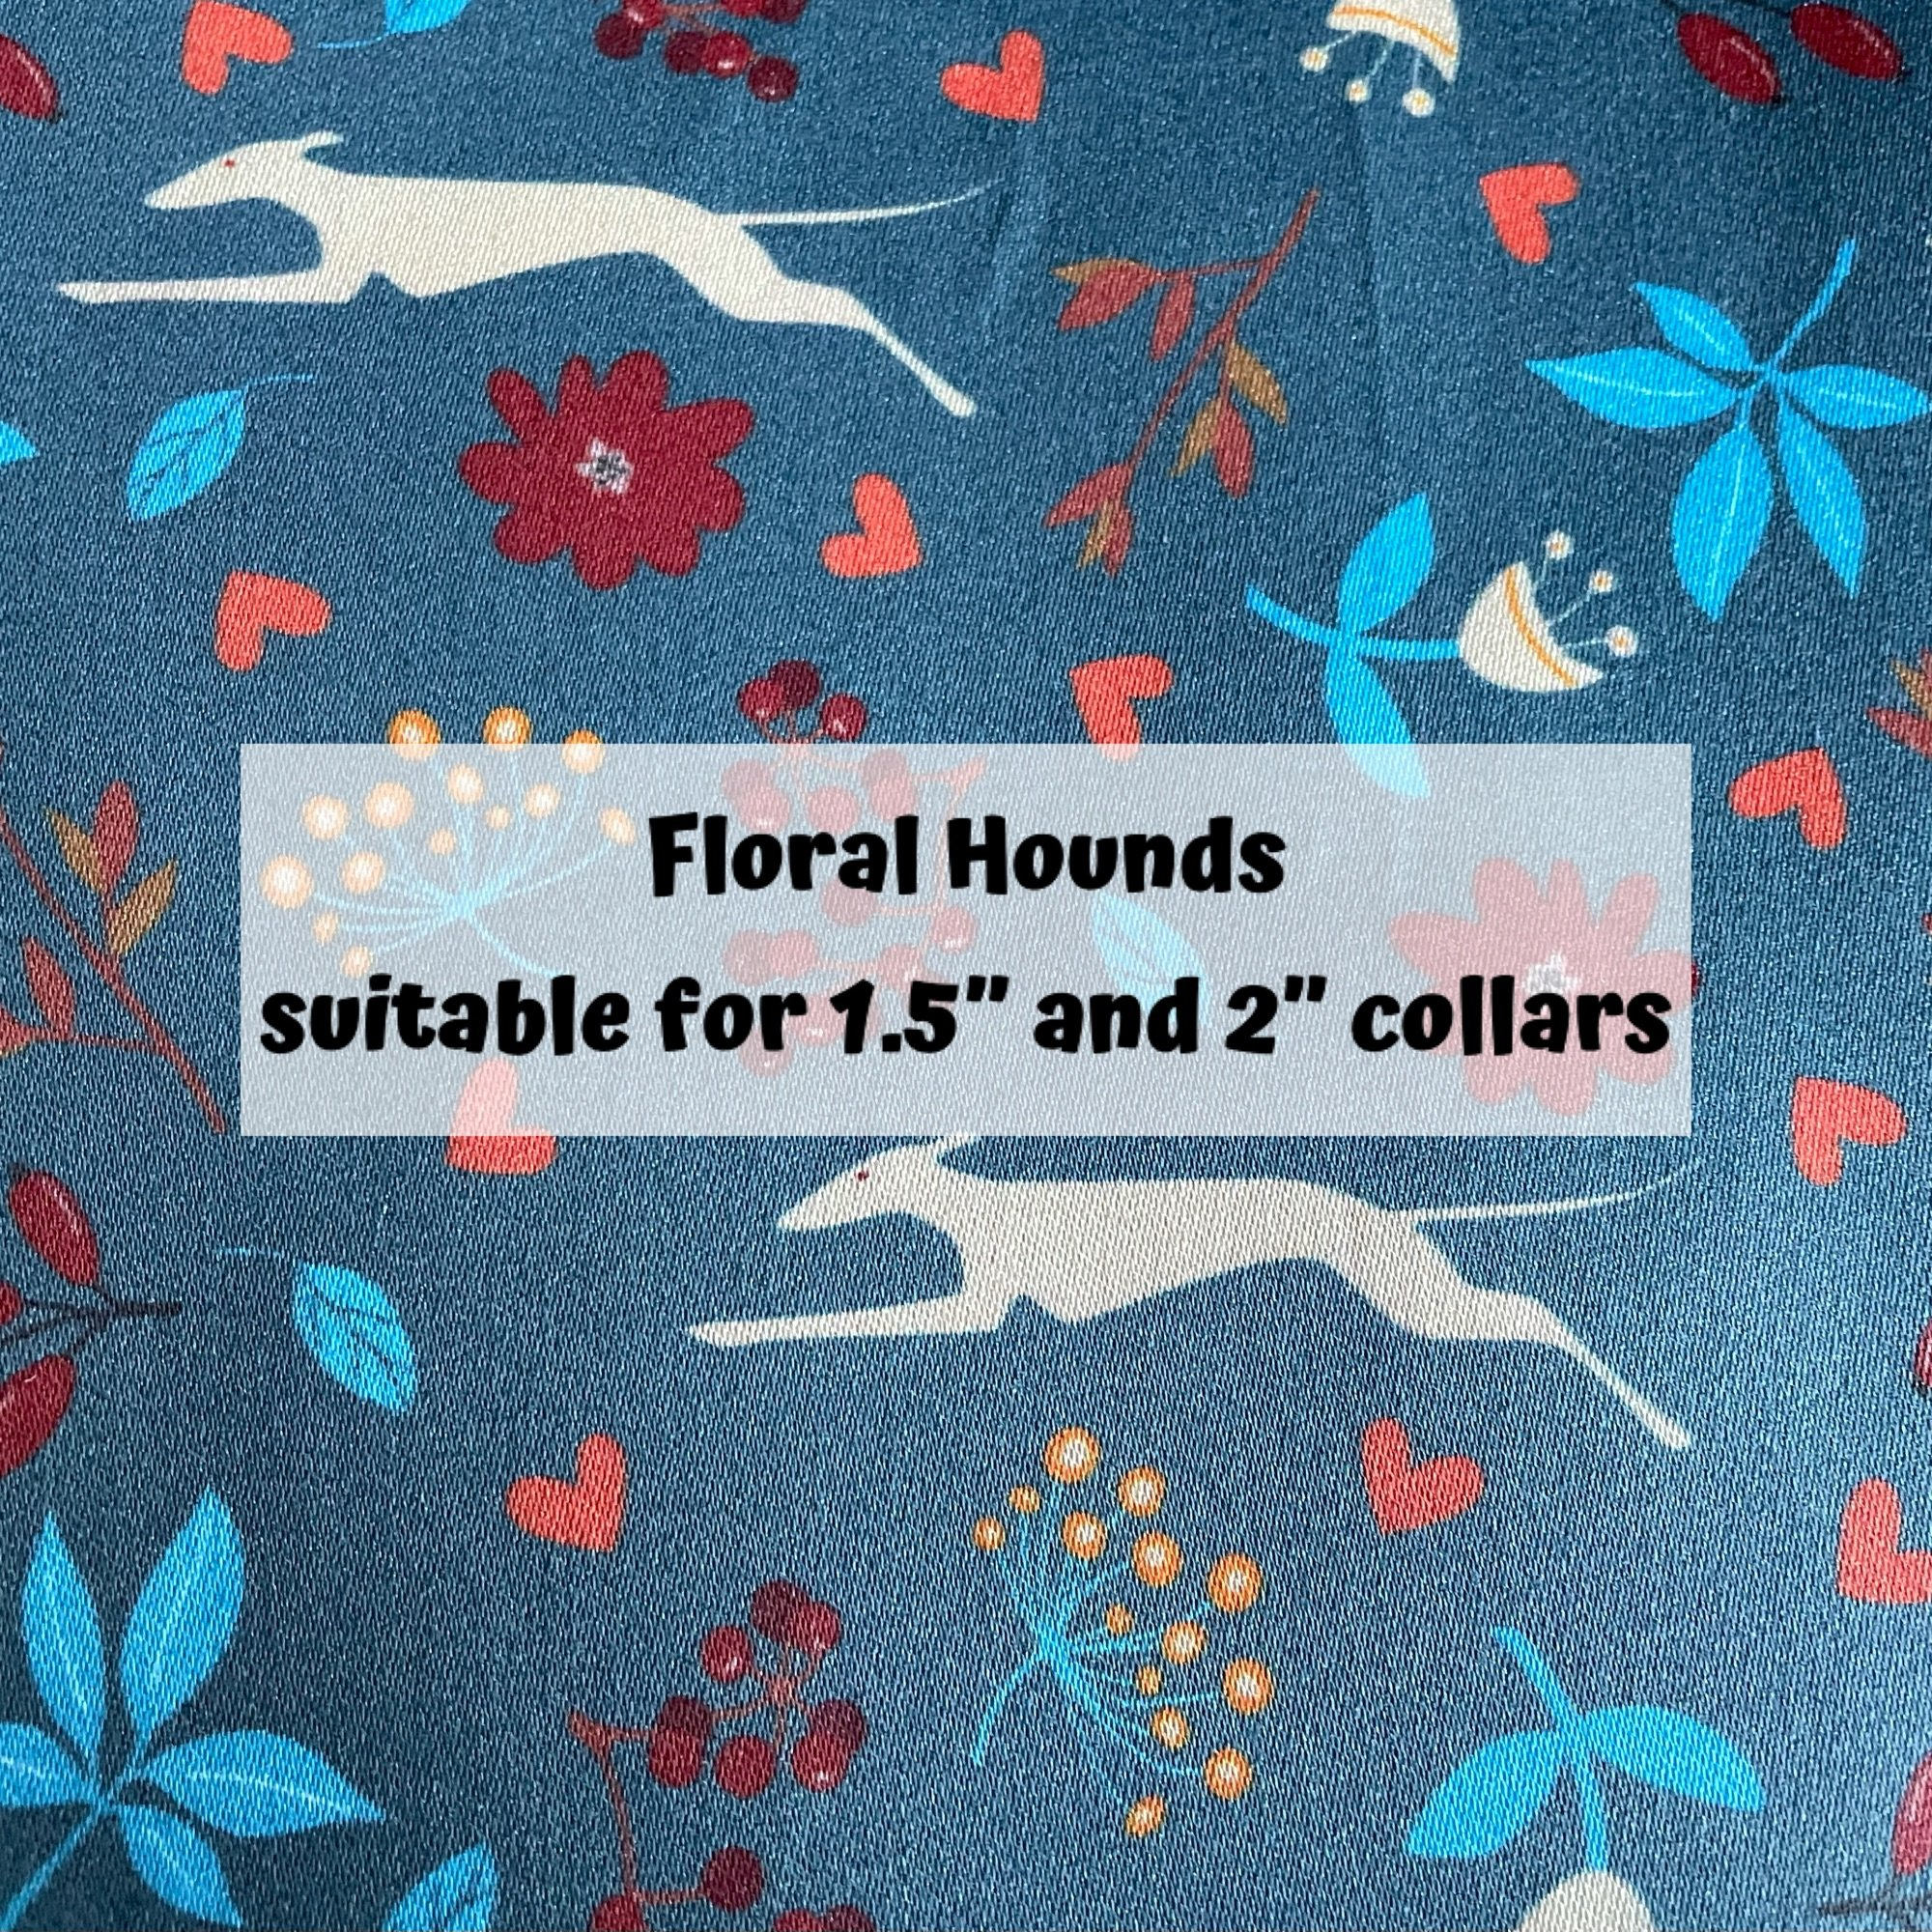 Floral Hounds